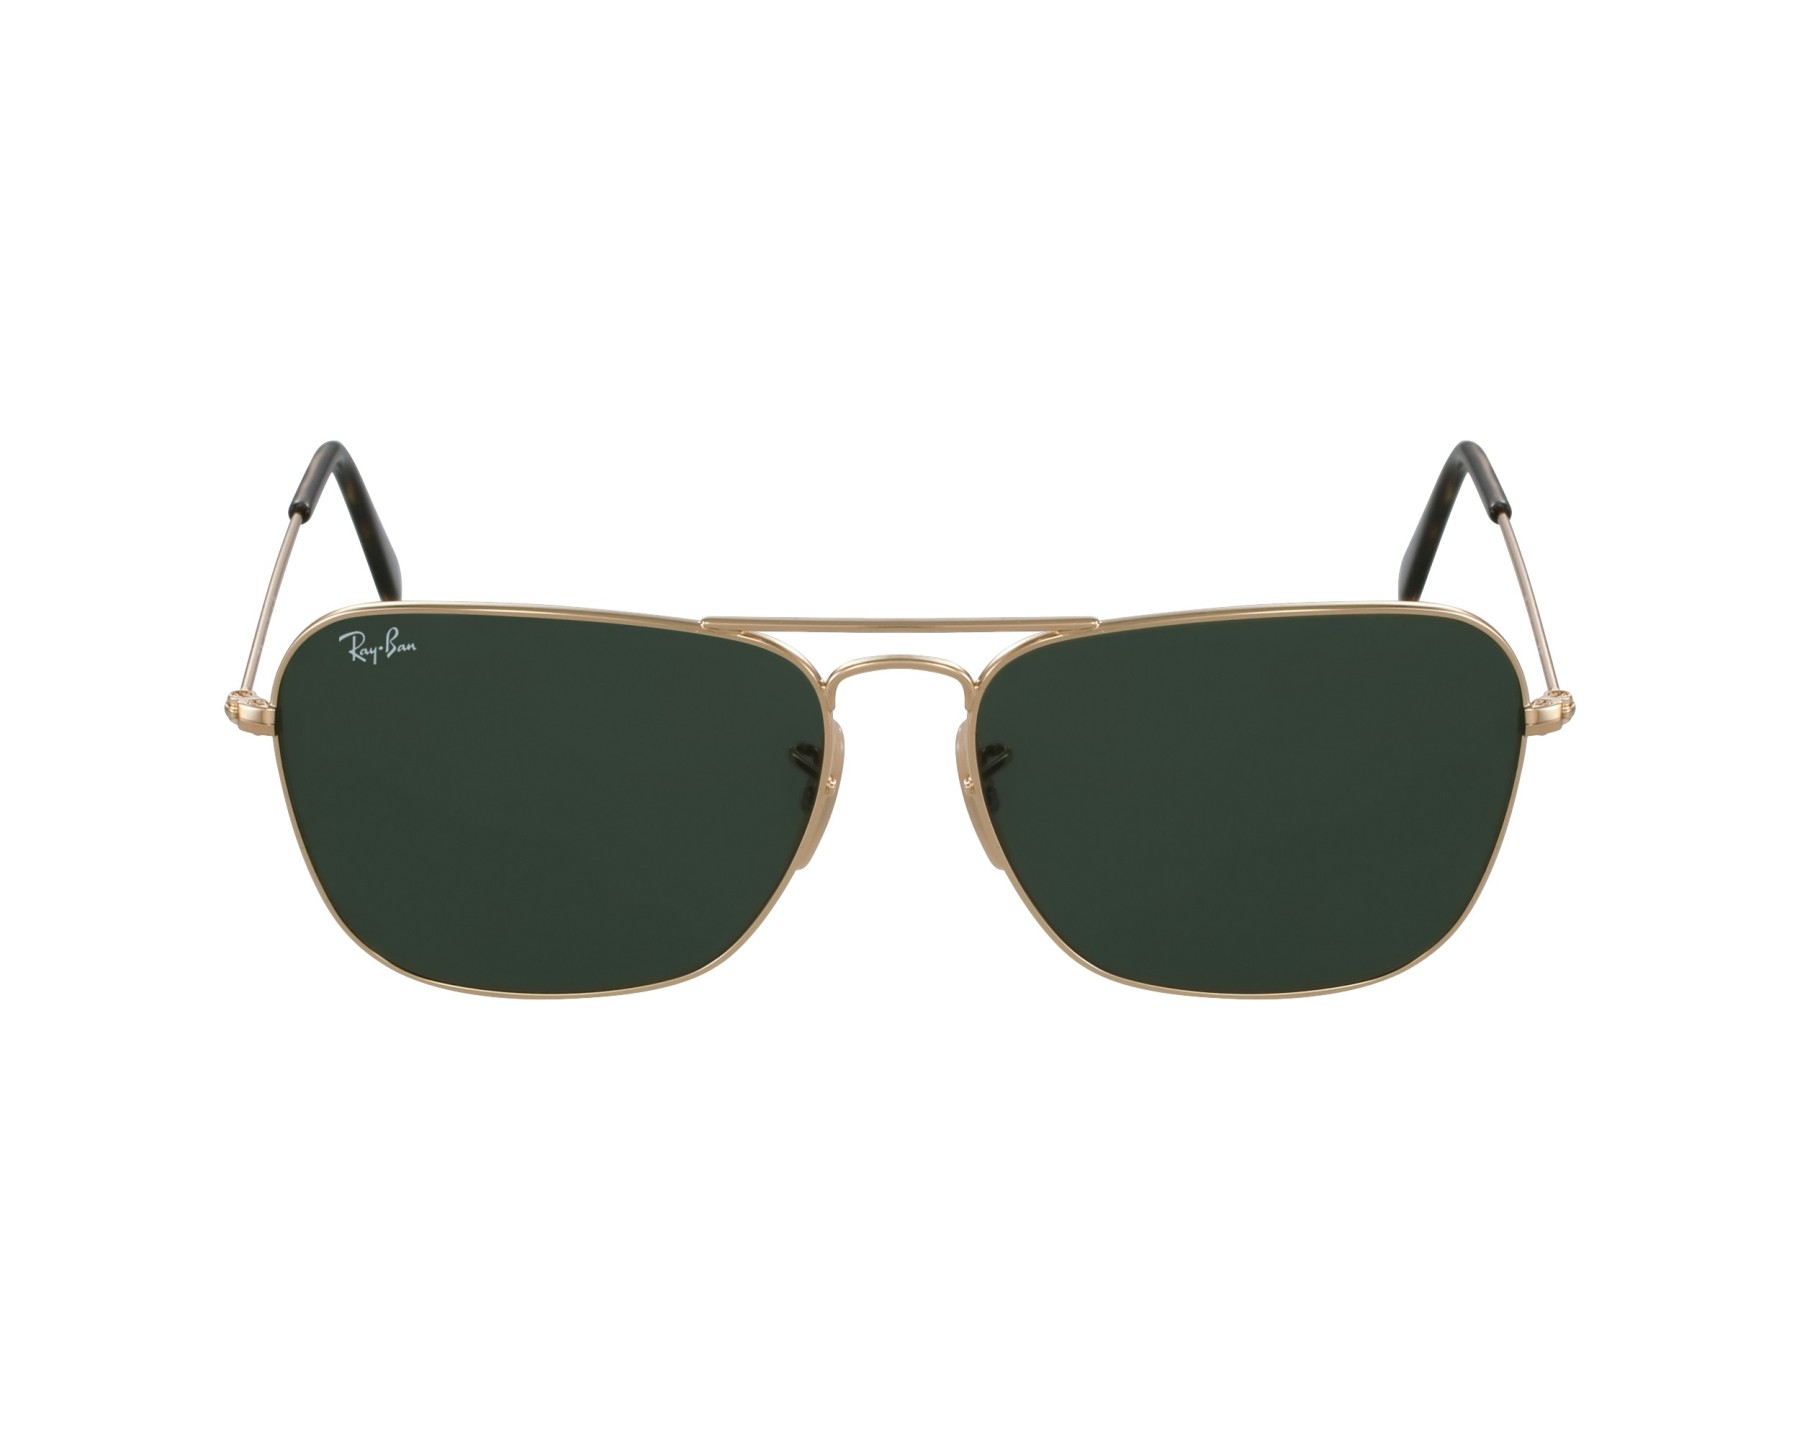 9afa8ef786 Sunglasses Ray-Ban RB-3136 181 55-15 Gold Havana profile view